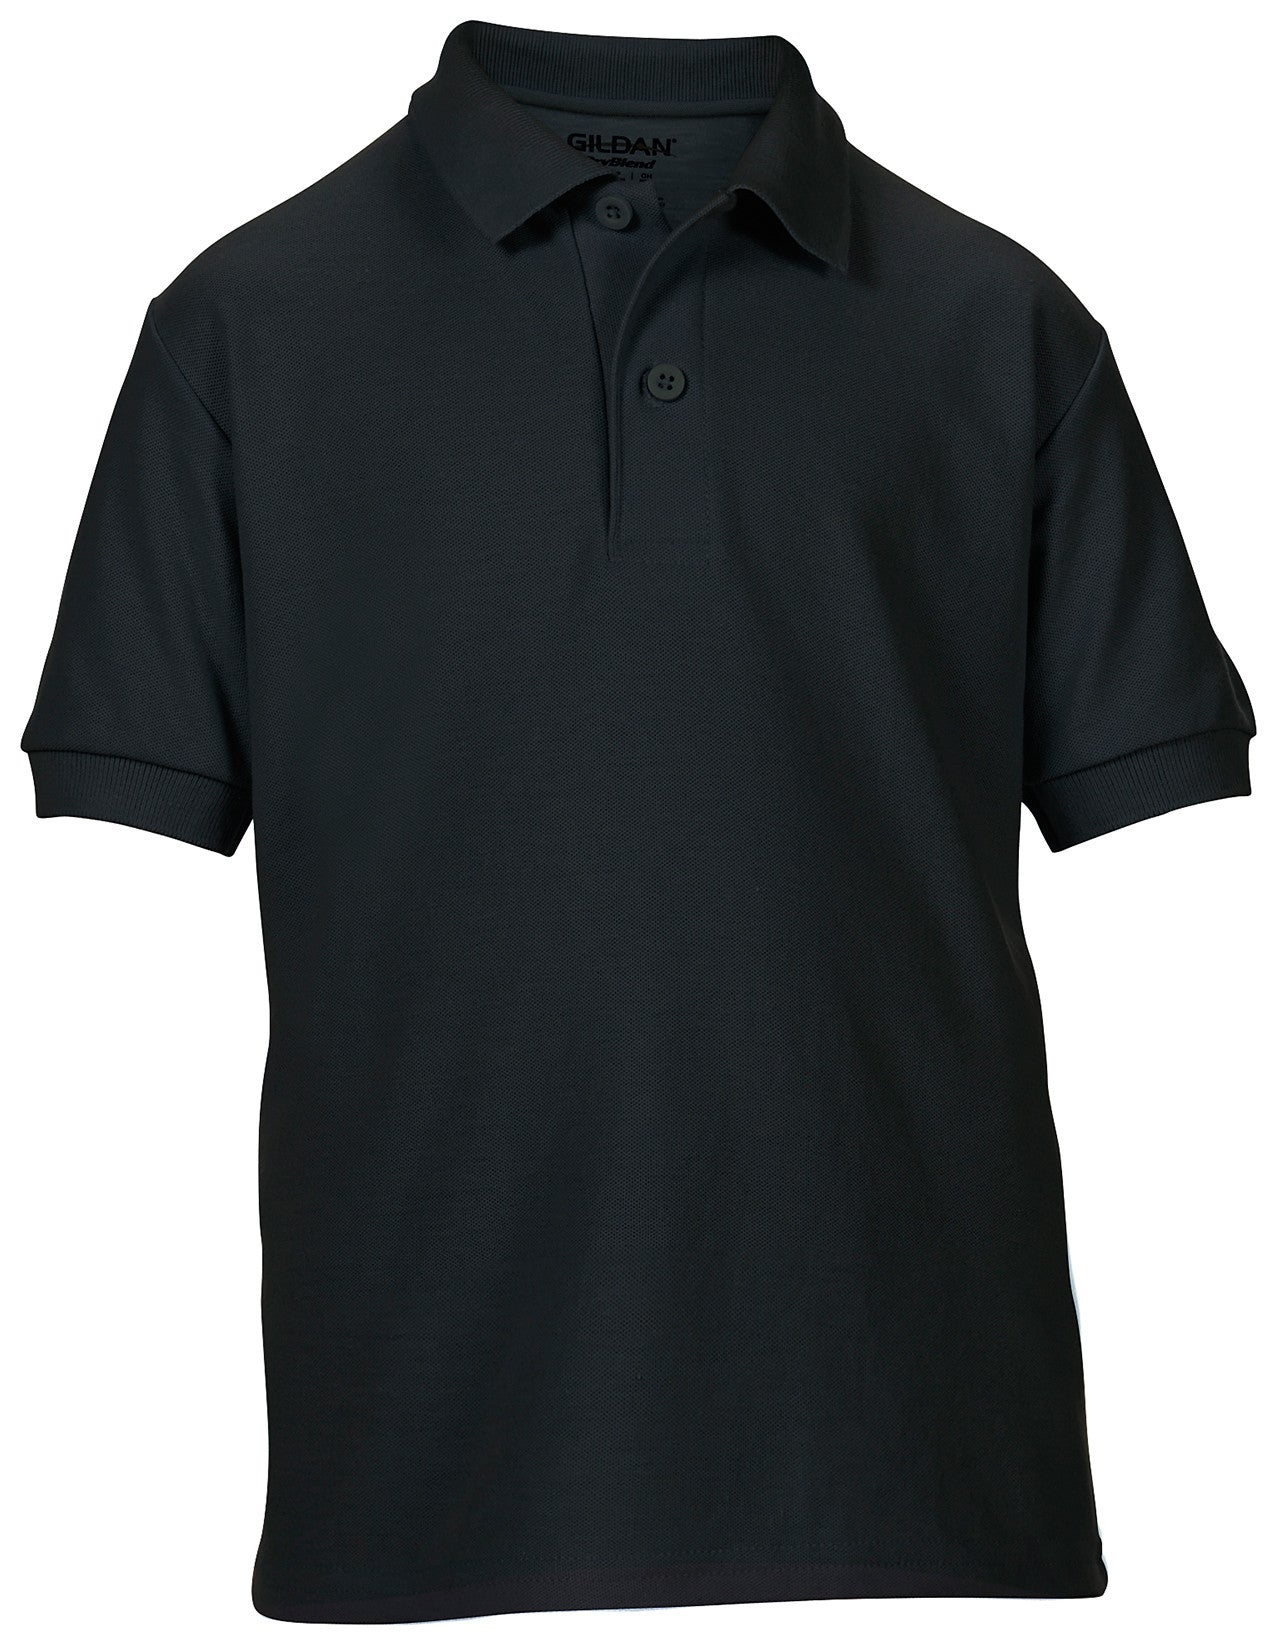 School Polo Shirts With Logo Chad Crowley Productions